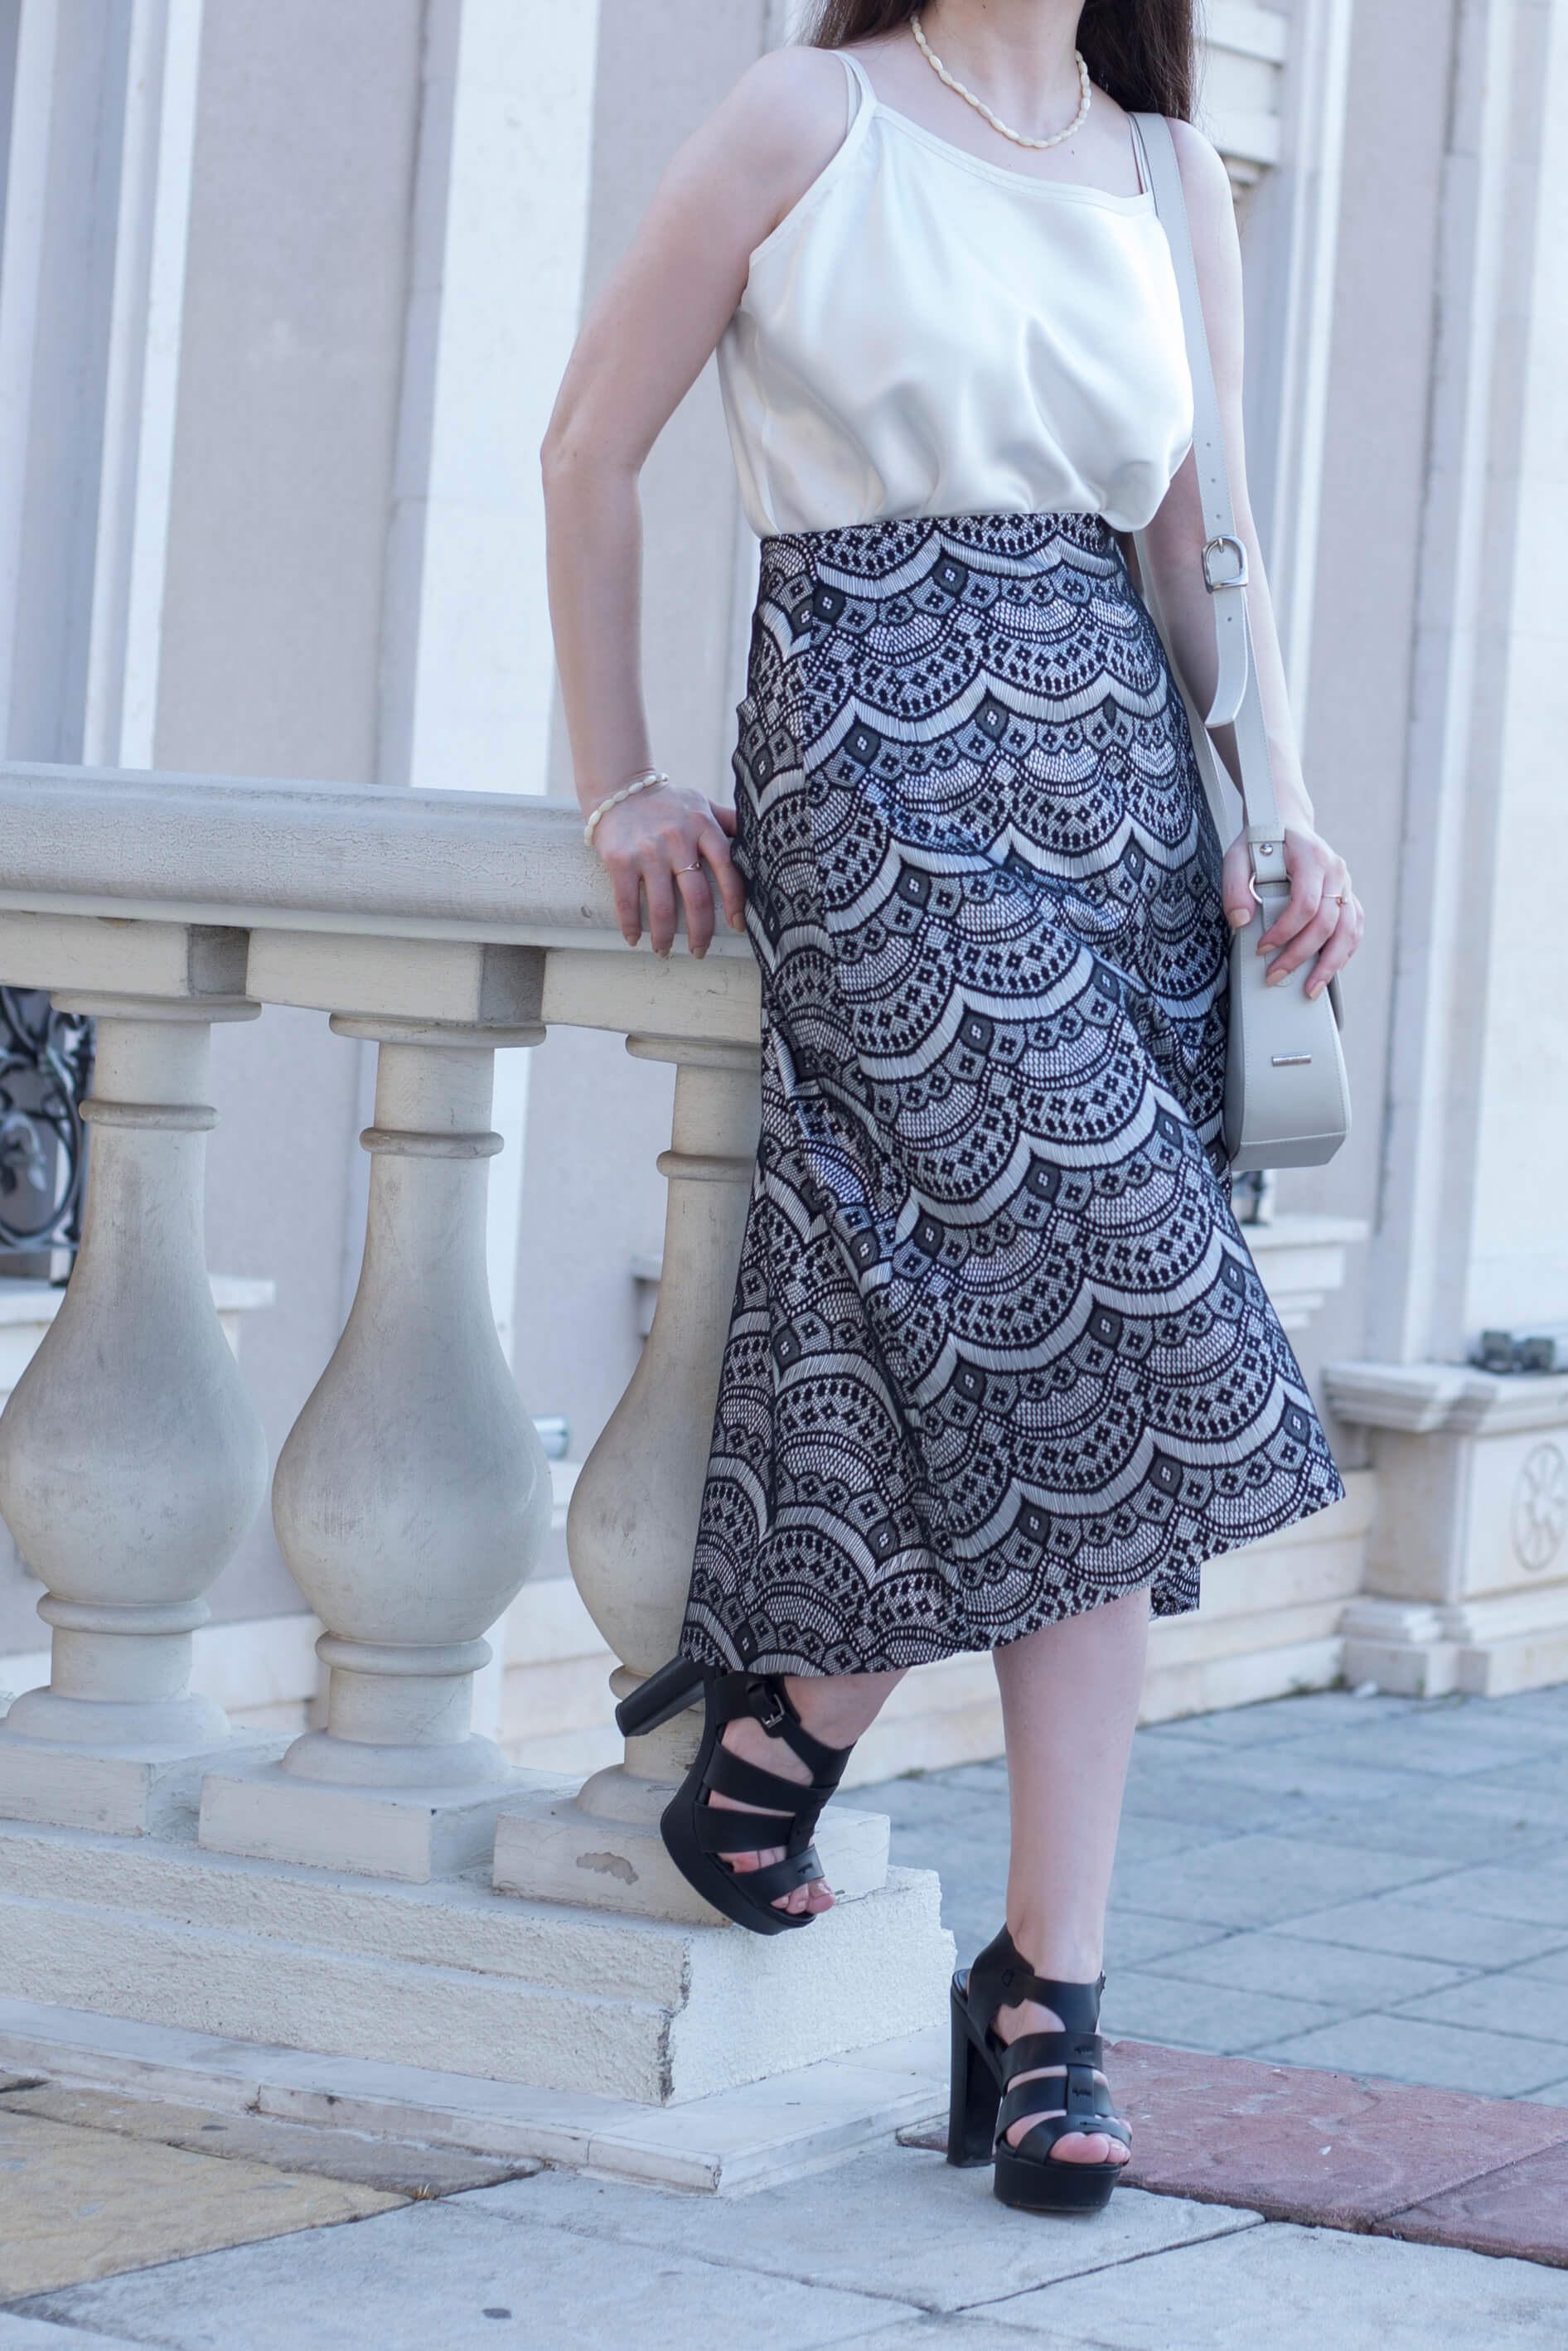 I designed a simple asymmetrical A-line lace skirt and made it in just few hours! Would you be interested in seeing sewing tutorials on www.dilekaspires.com?